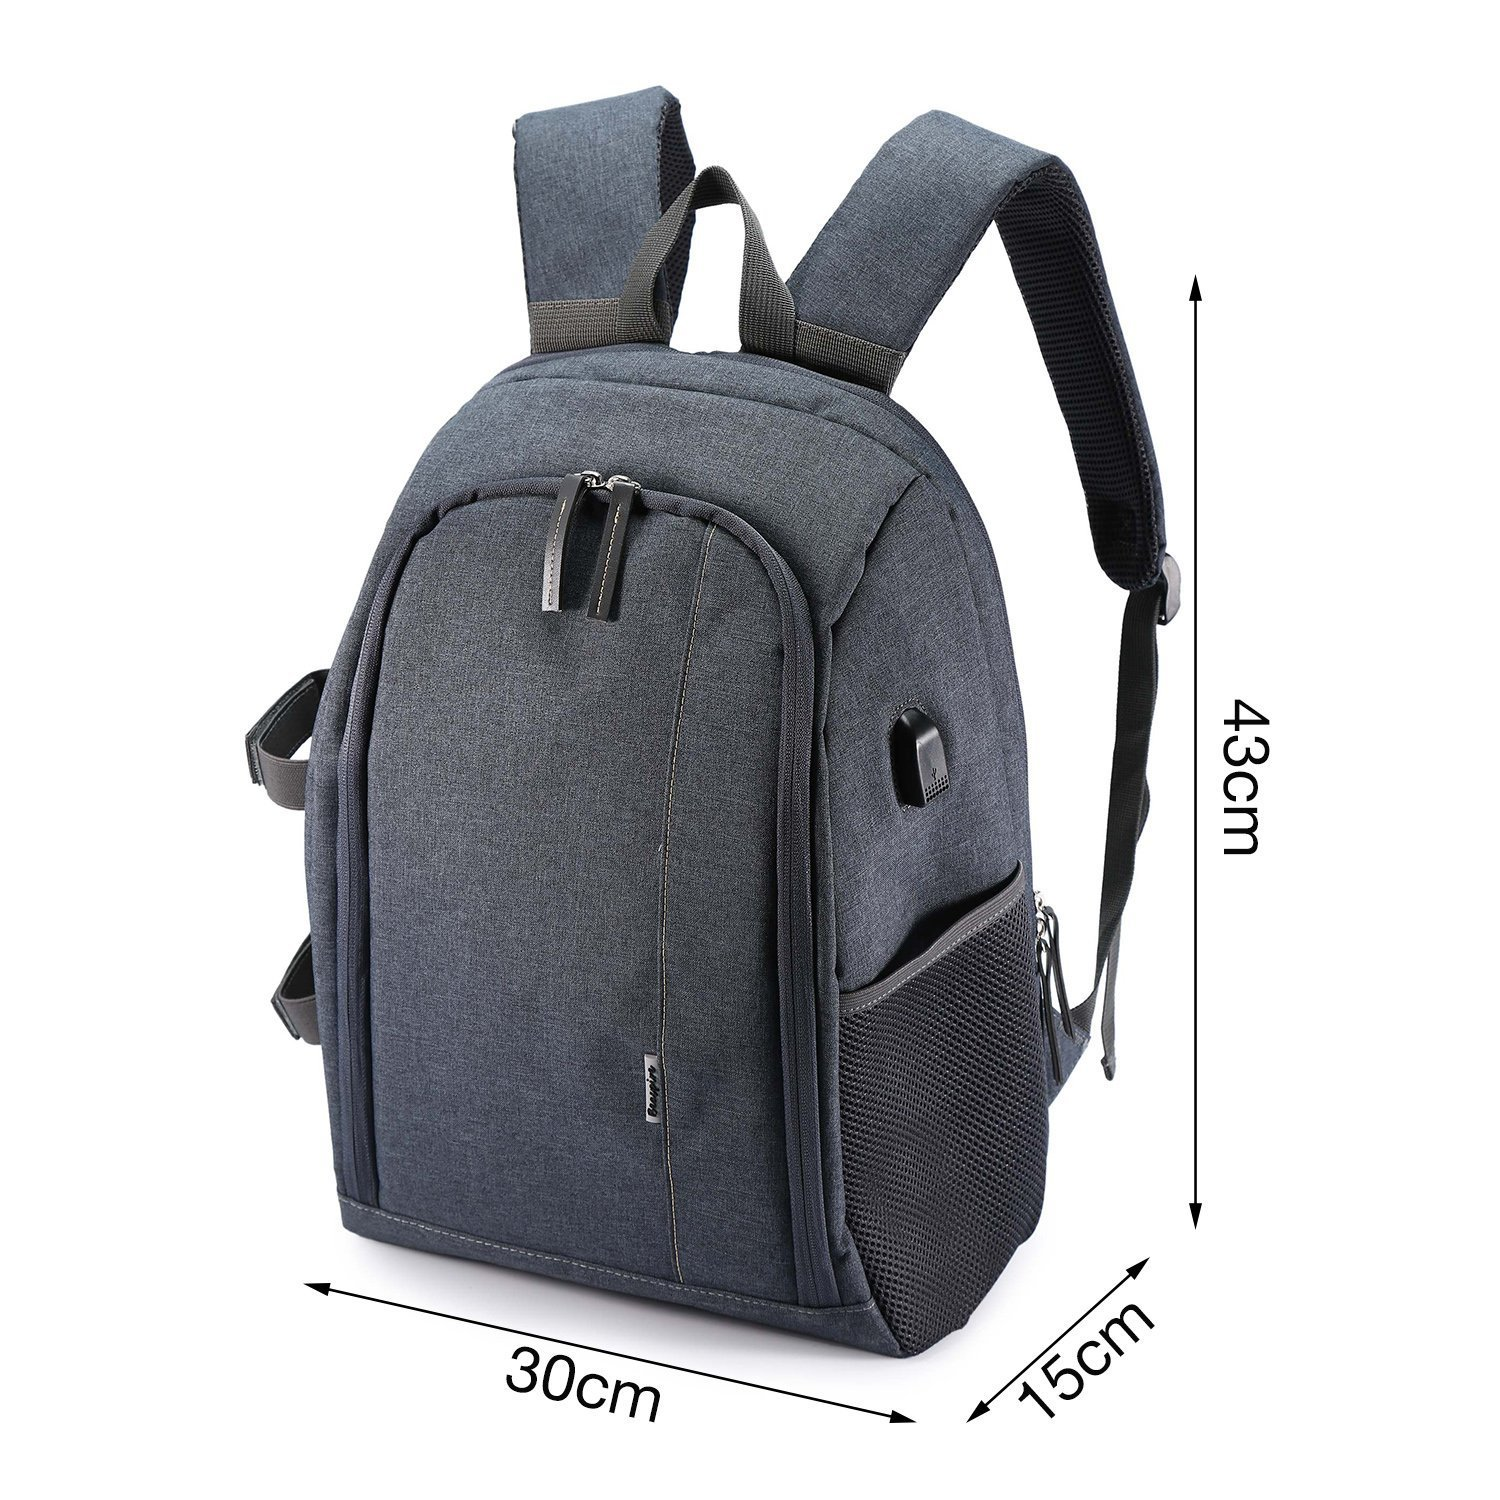 Camera Backpack Waterproof Nylon DSLR Backpack Professional Camera Bag with USB External Charging Port for Canon Nikon Sony Camera Accessories and Laptops Tablets Black (Gray) by Cozyvie (Image #1)